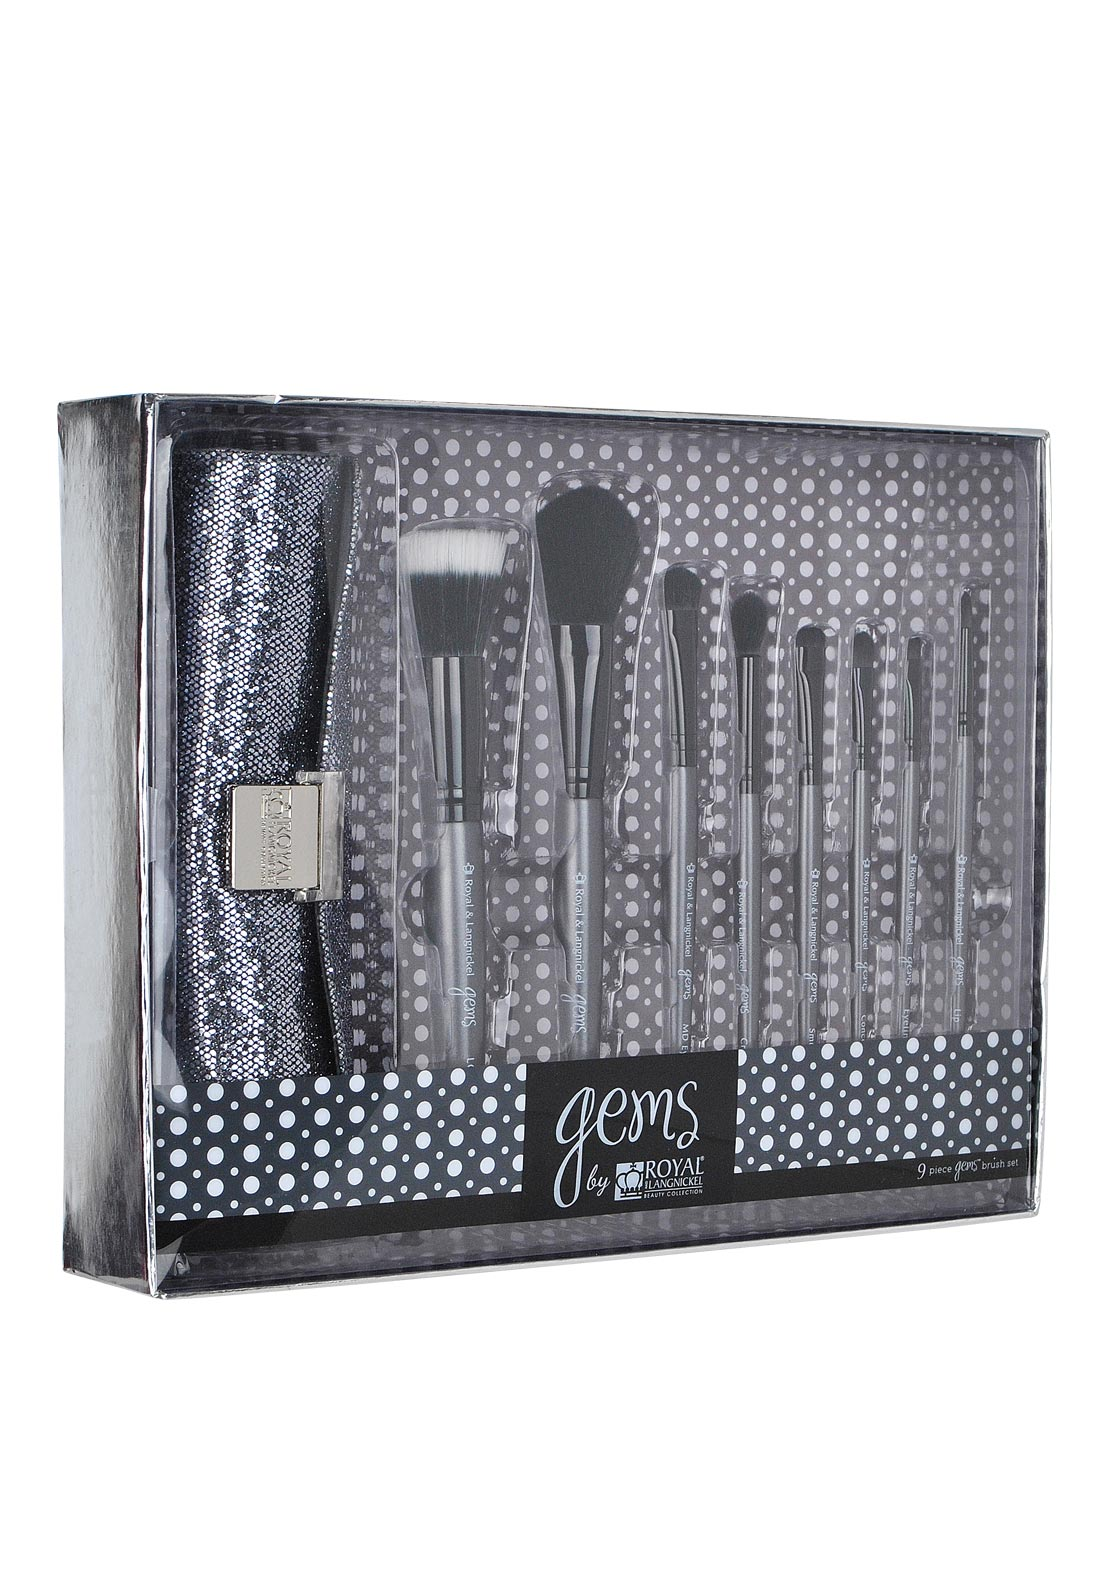 Gems by Royal and Langnickel Beauty Collection Brush Set, Black